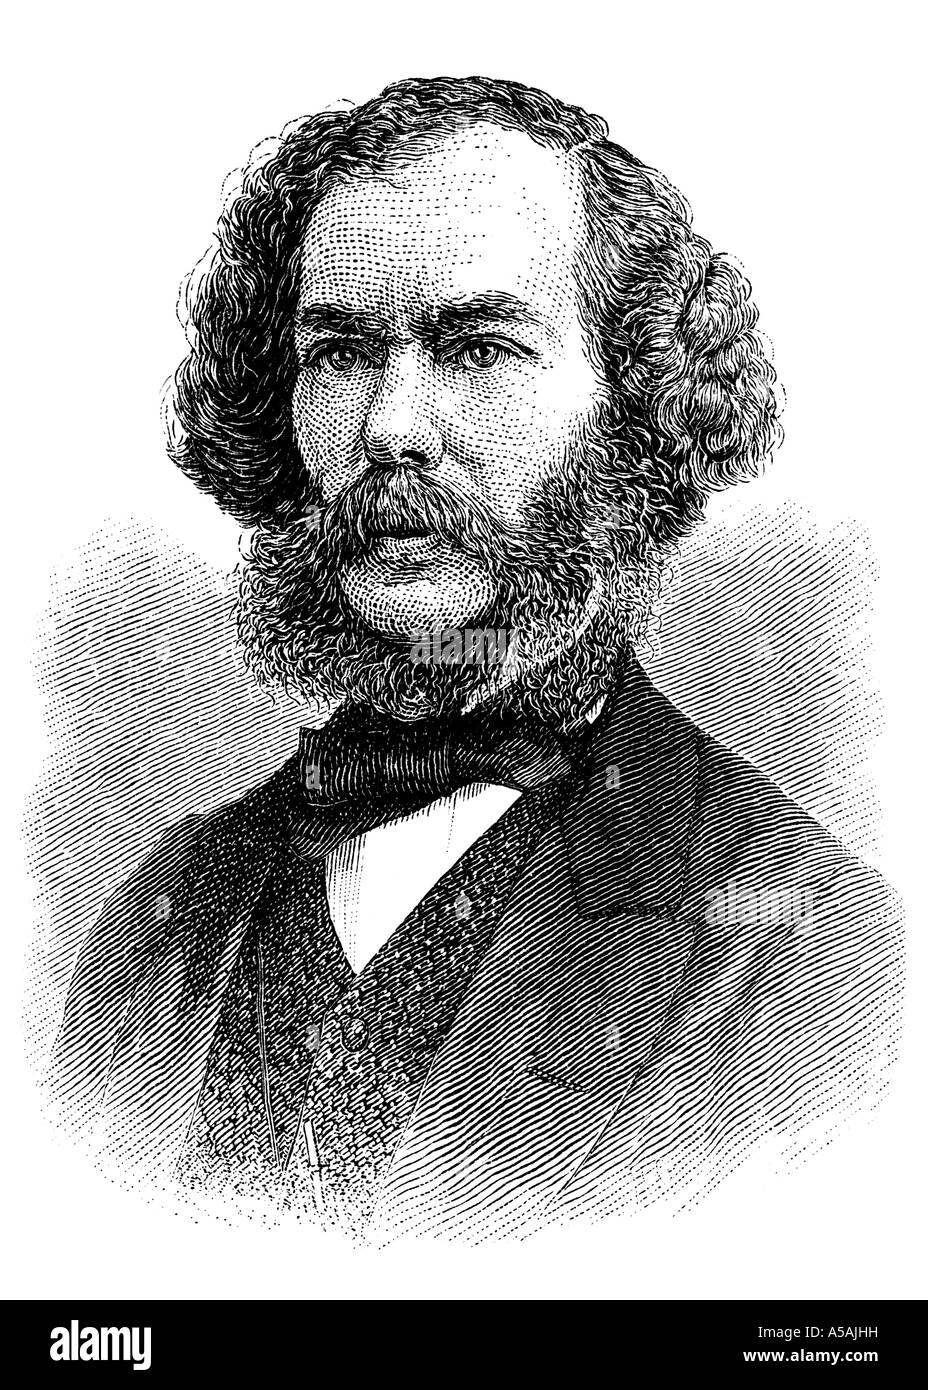 Engraving of 19th century literary critic George Henry Lewes - Stock Image